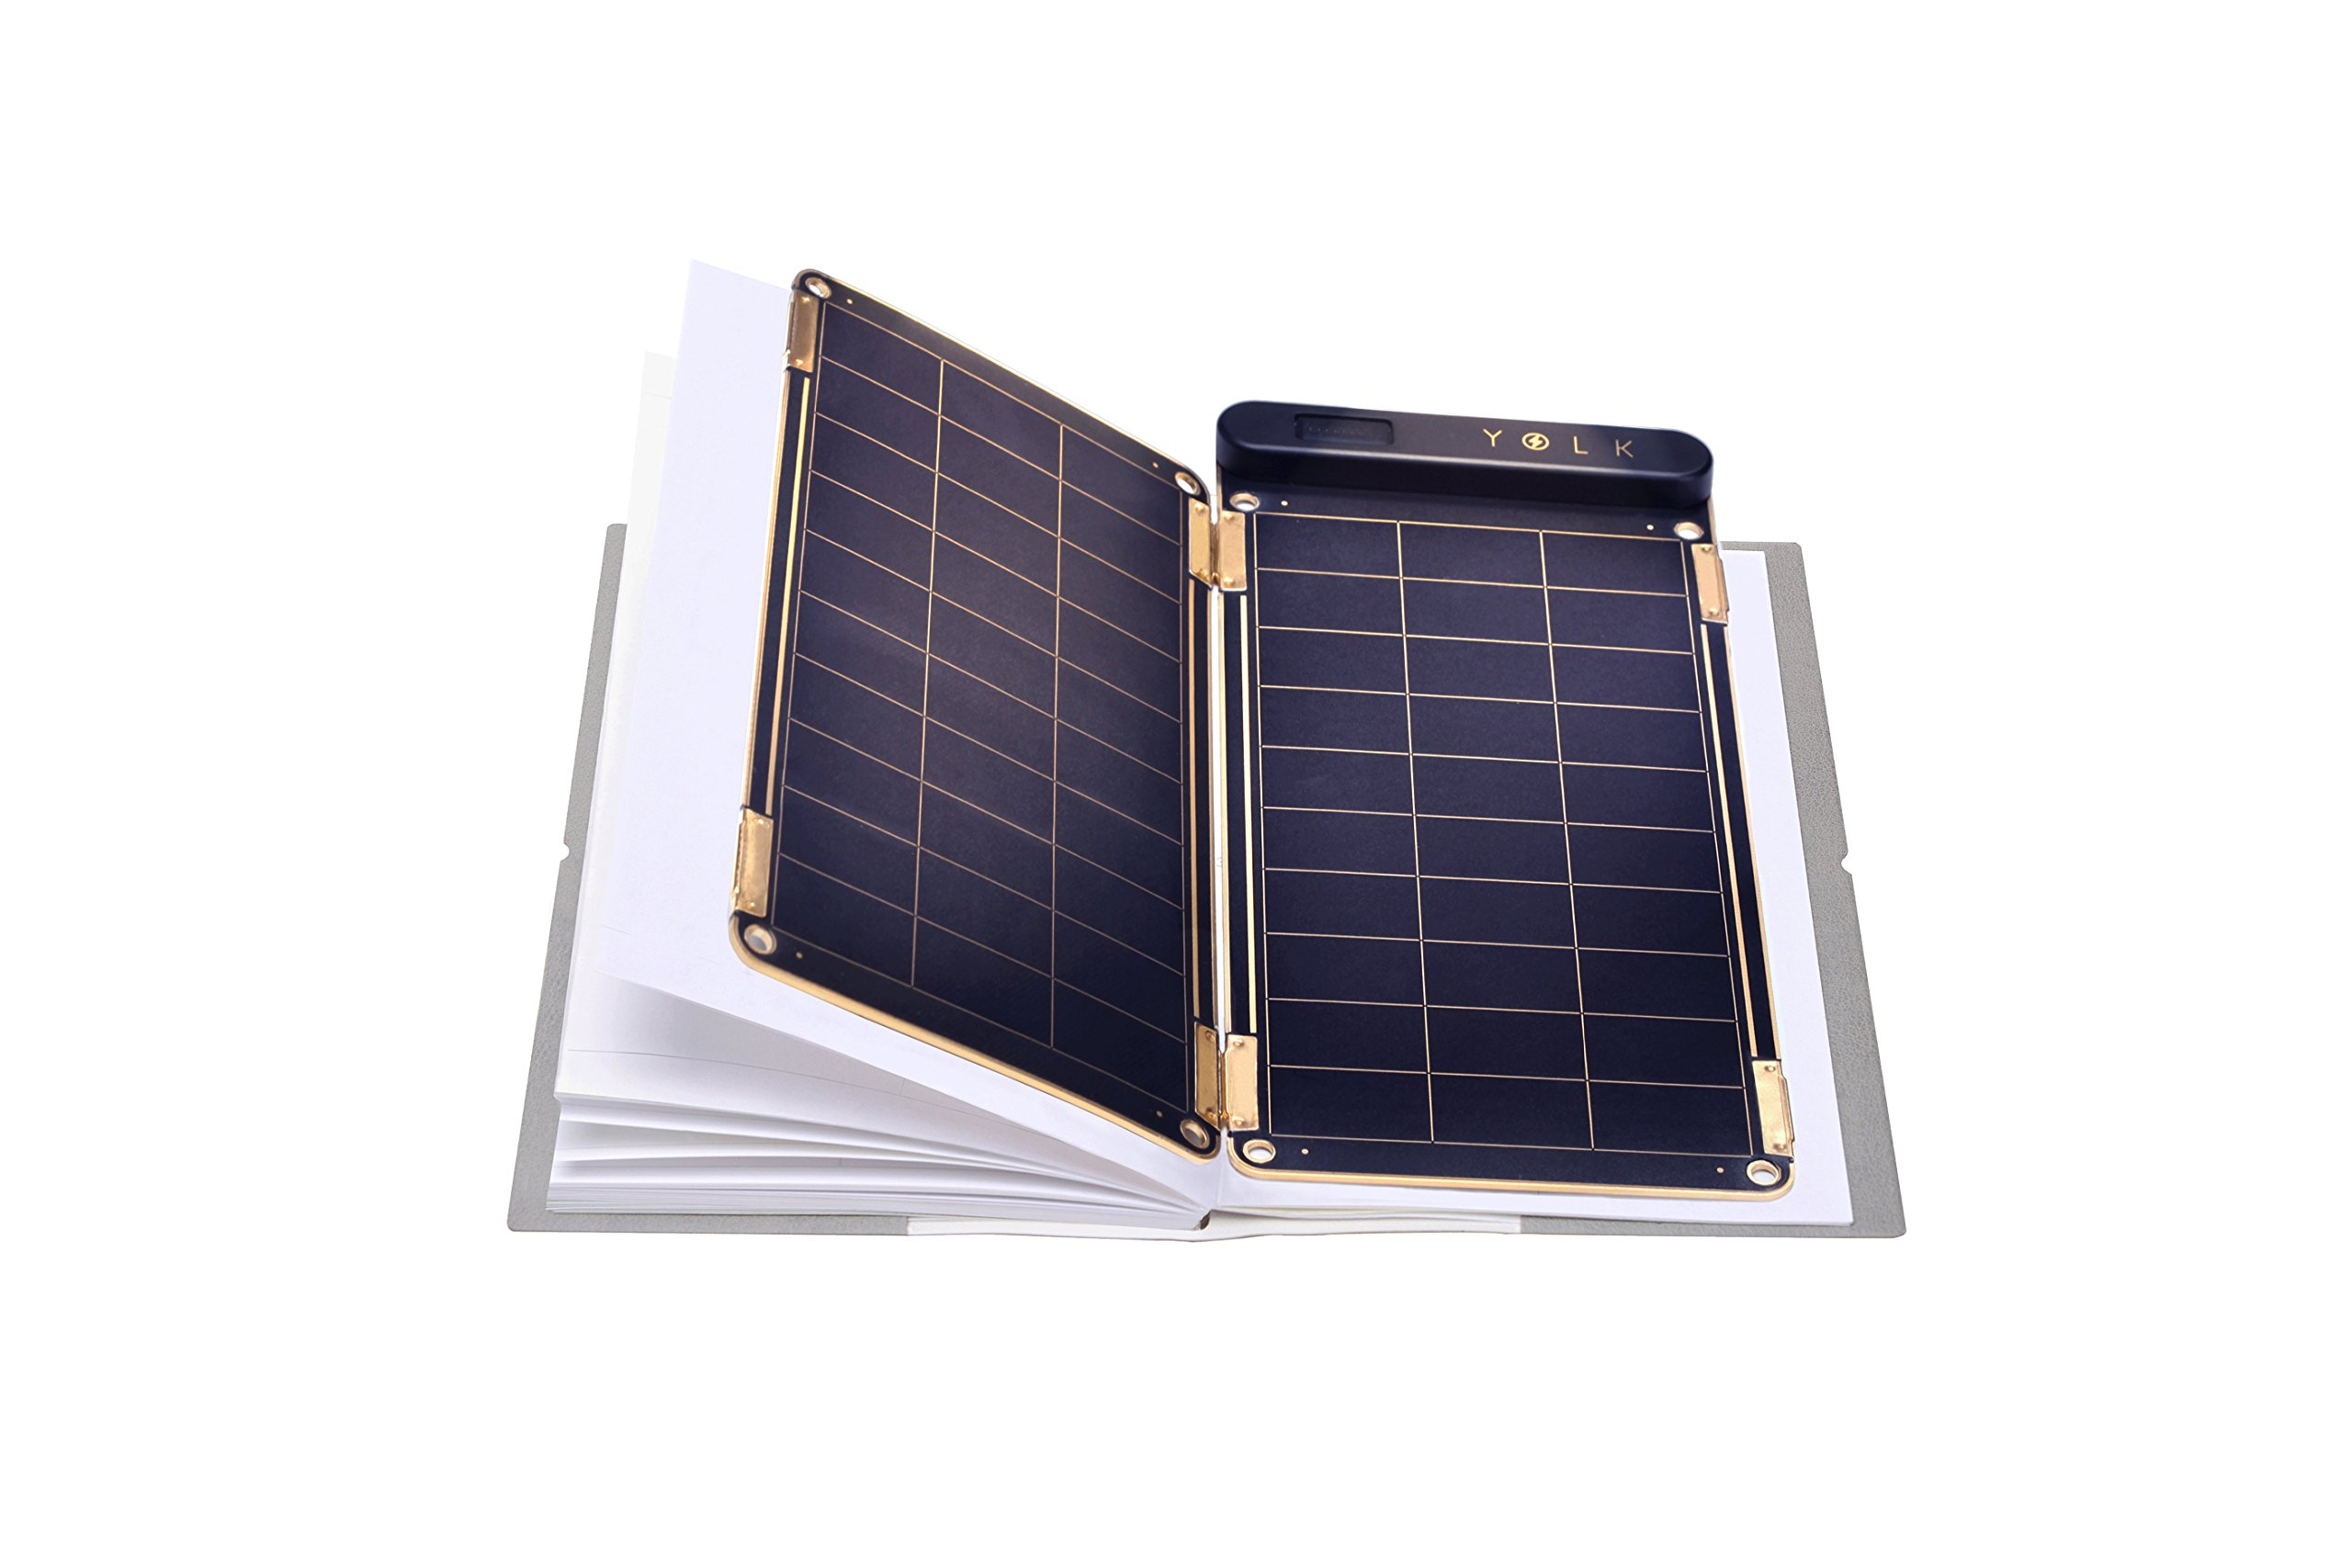 Solar Paper + Pouch, Paper-Thin and Light Portable Solar Charger with Ultra-High-Efficiency (5W) by YOLK